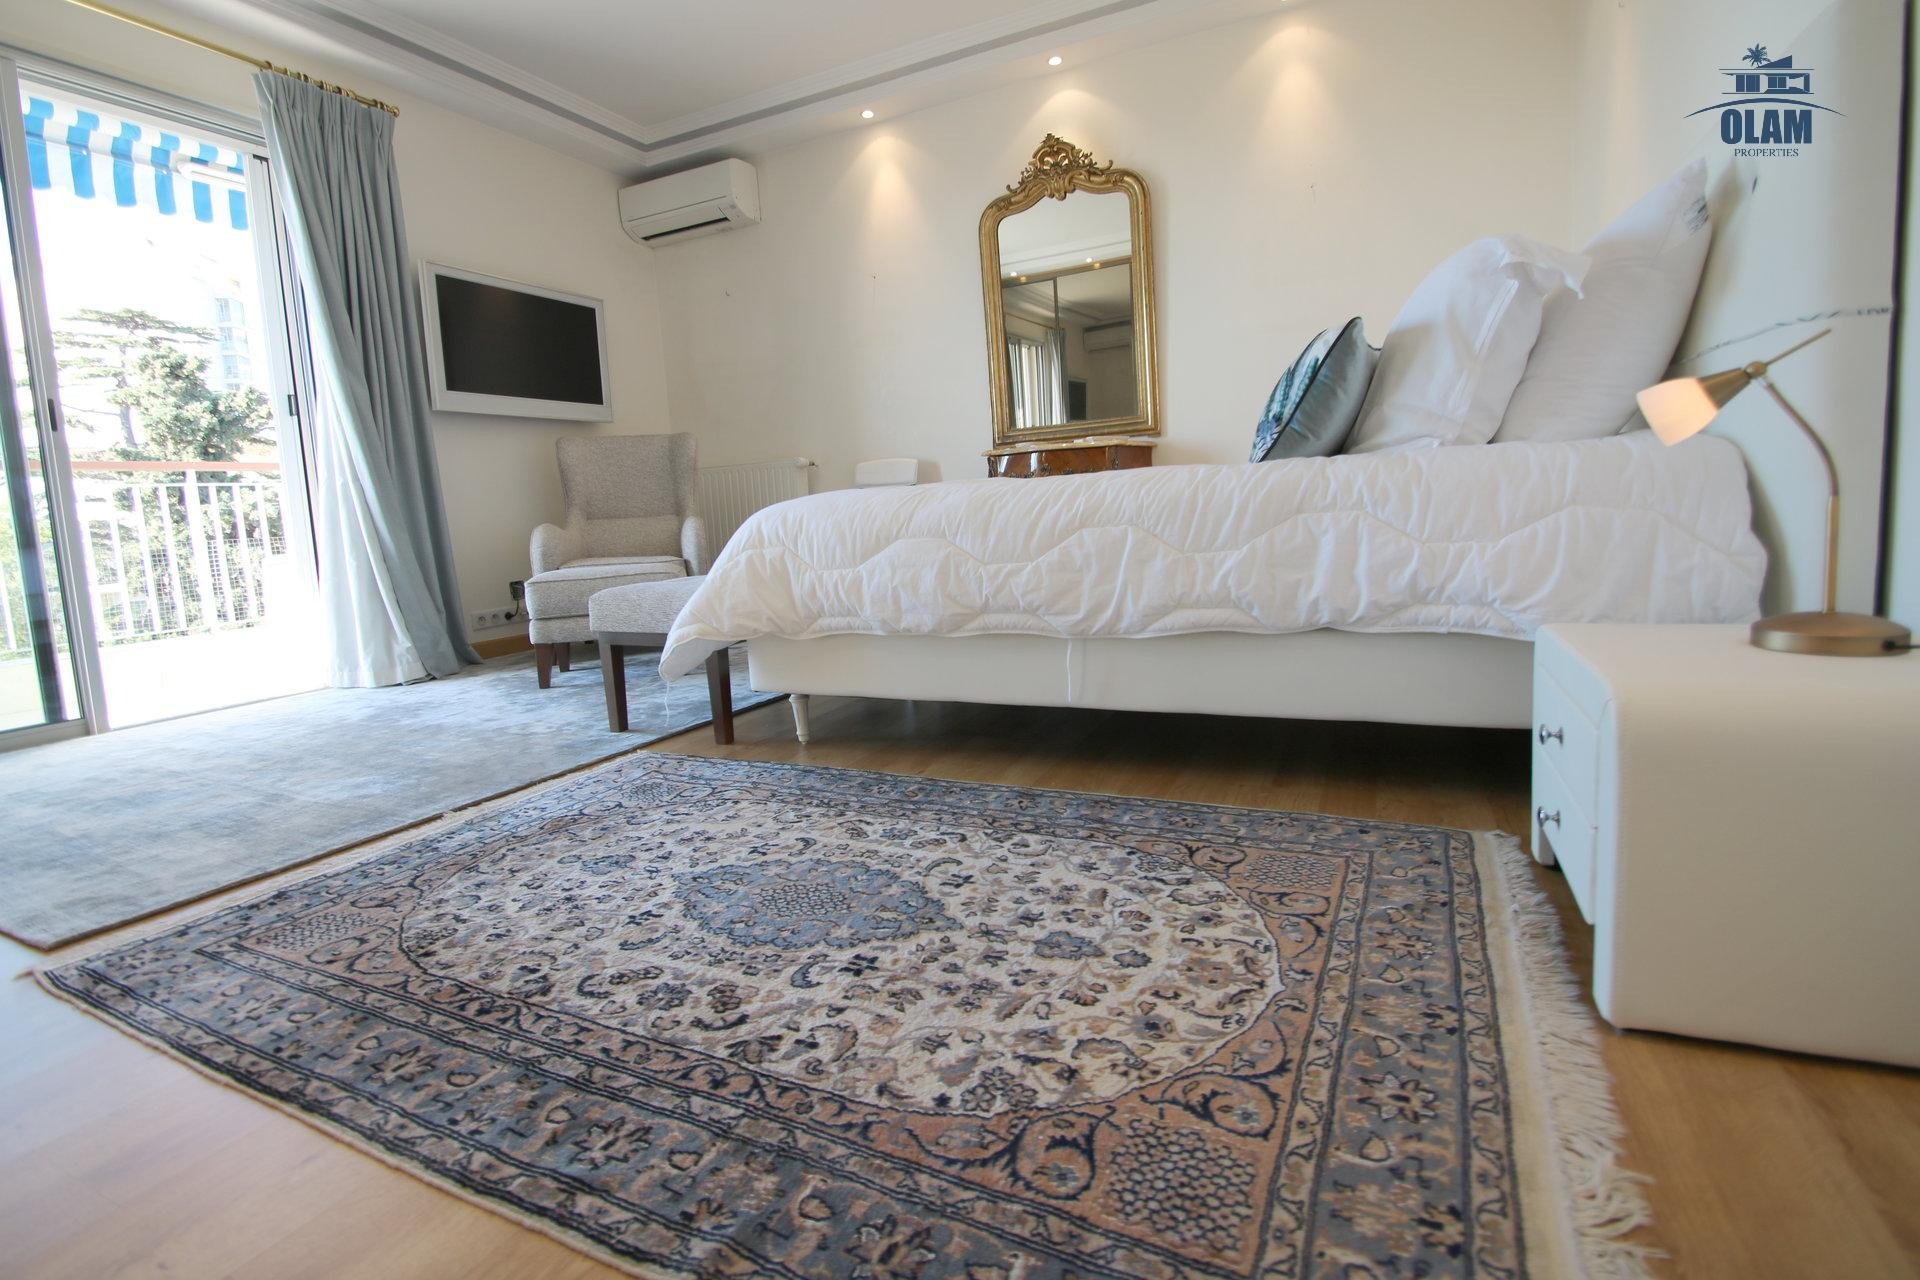 Big bedroom, queensize bed, Cannes, French Riviera, cozy